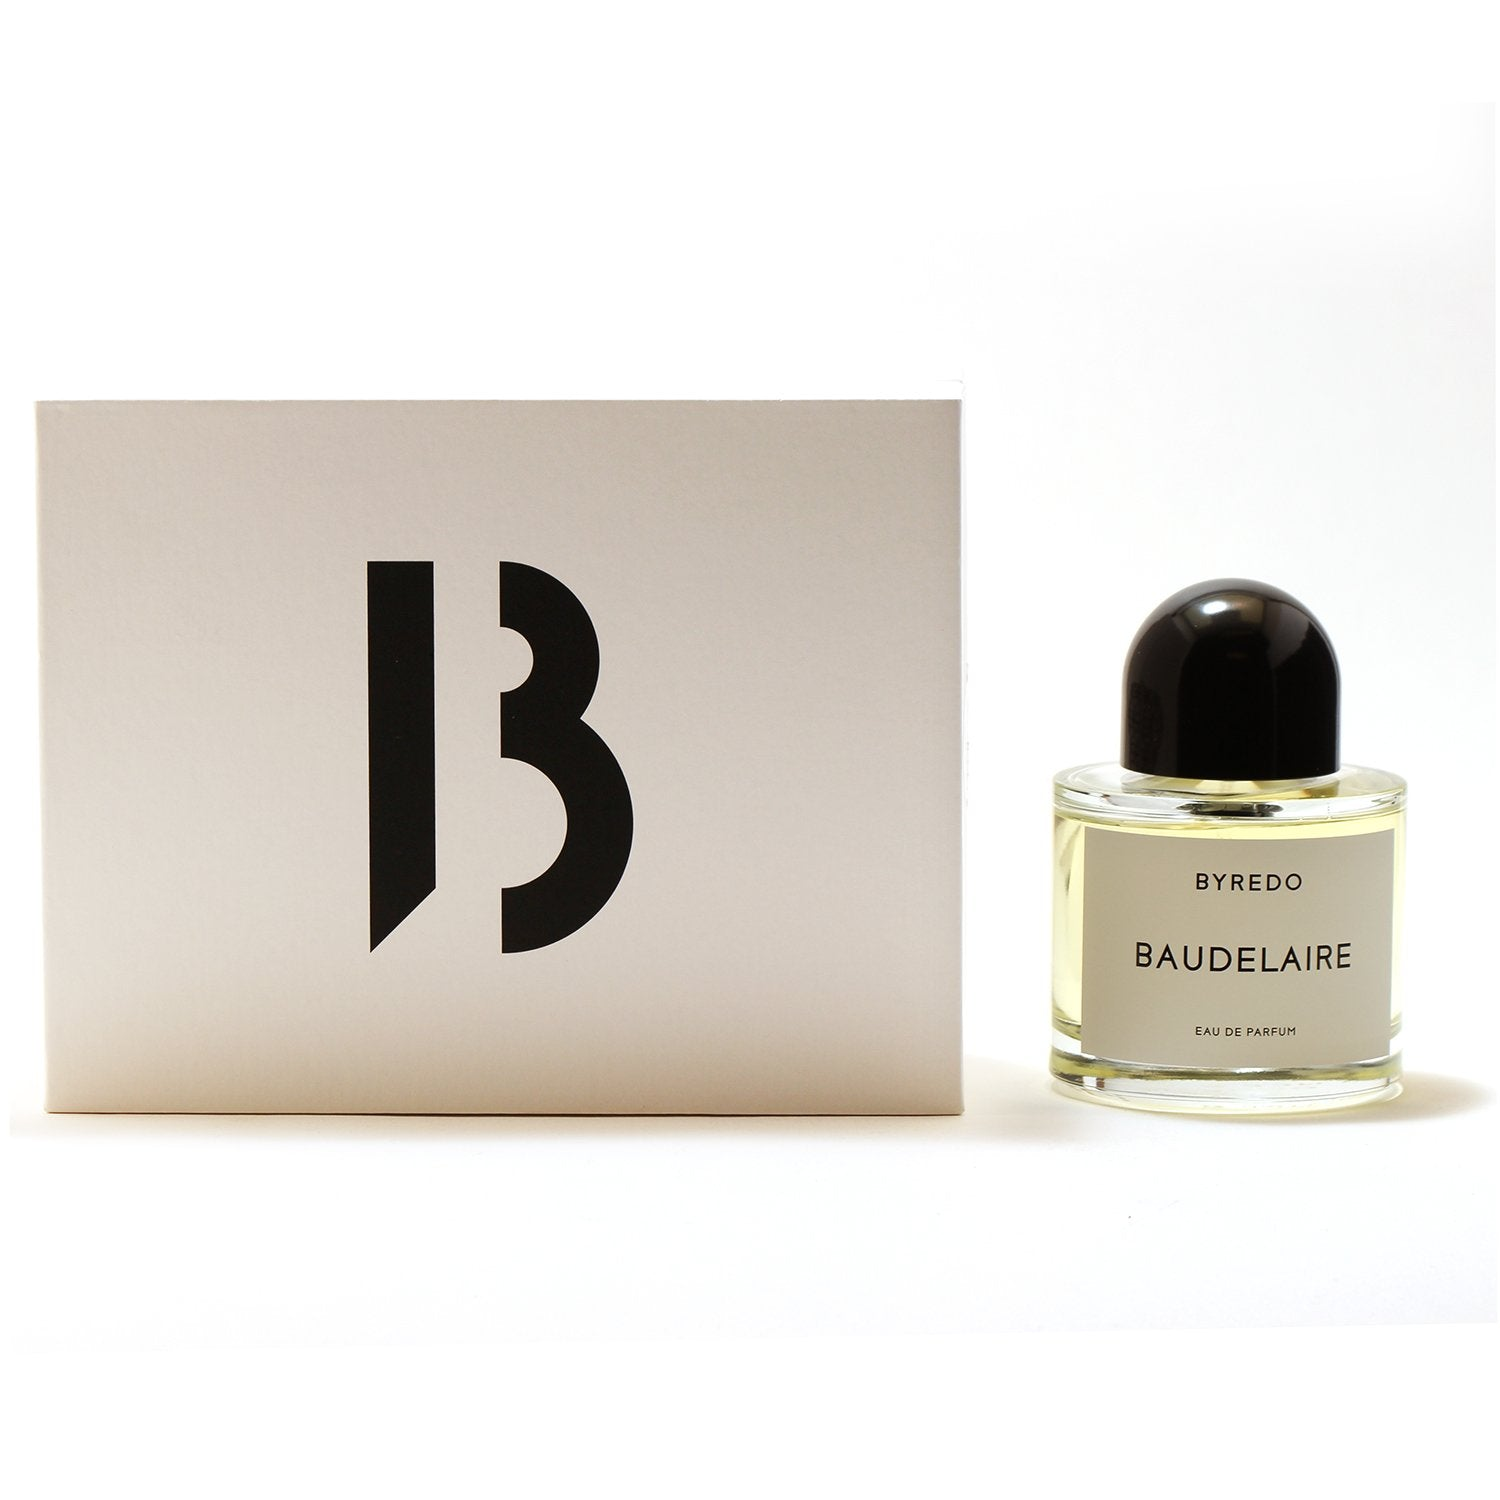 Cologne - BYREDO BAUDELAIRE FOR MEN - EAU DE PARFUM SPRAY, 3.4 OZ